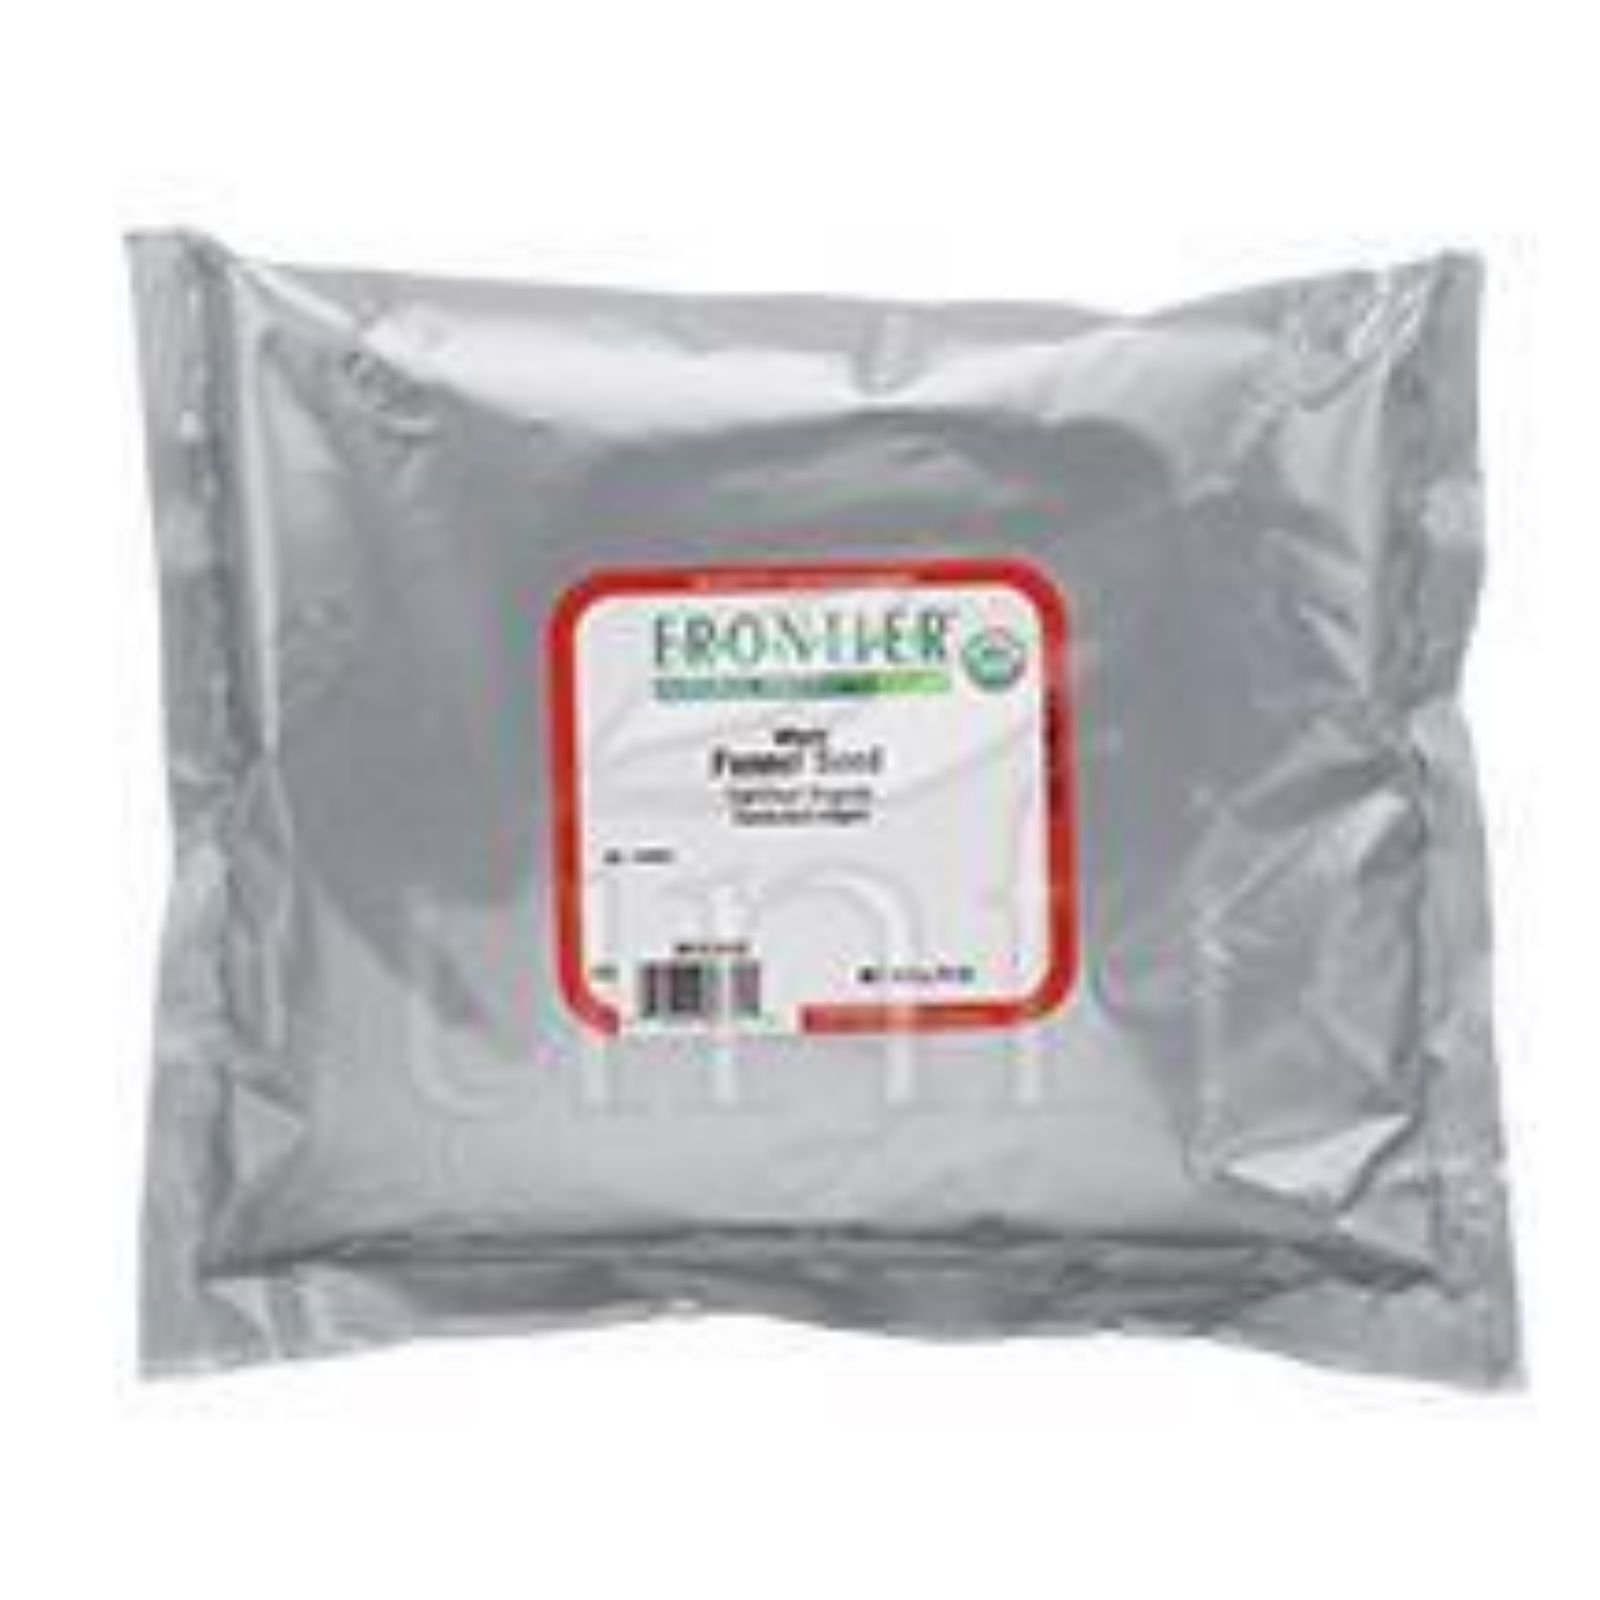 Frontier Herb Fennel Seed - Organic - Whole - Kosher - 1 lb